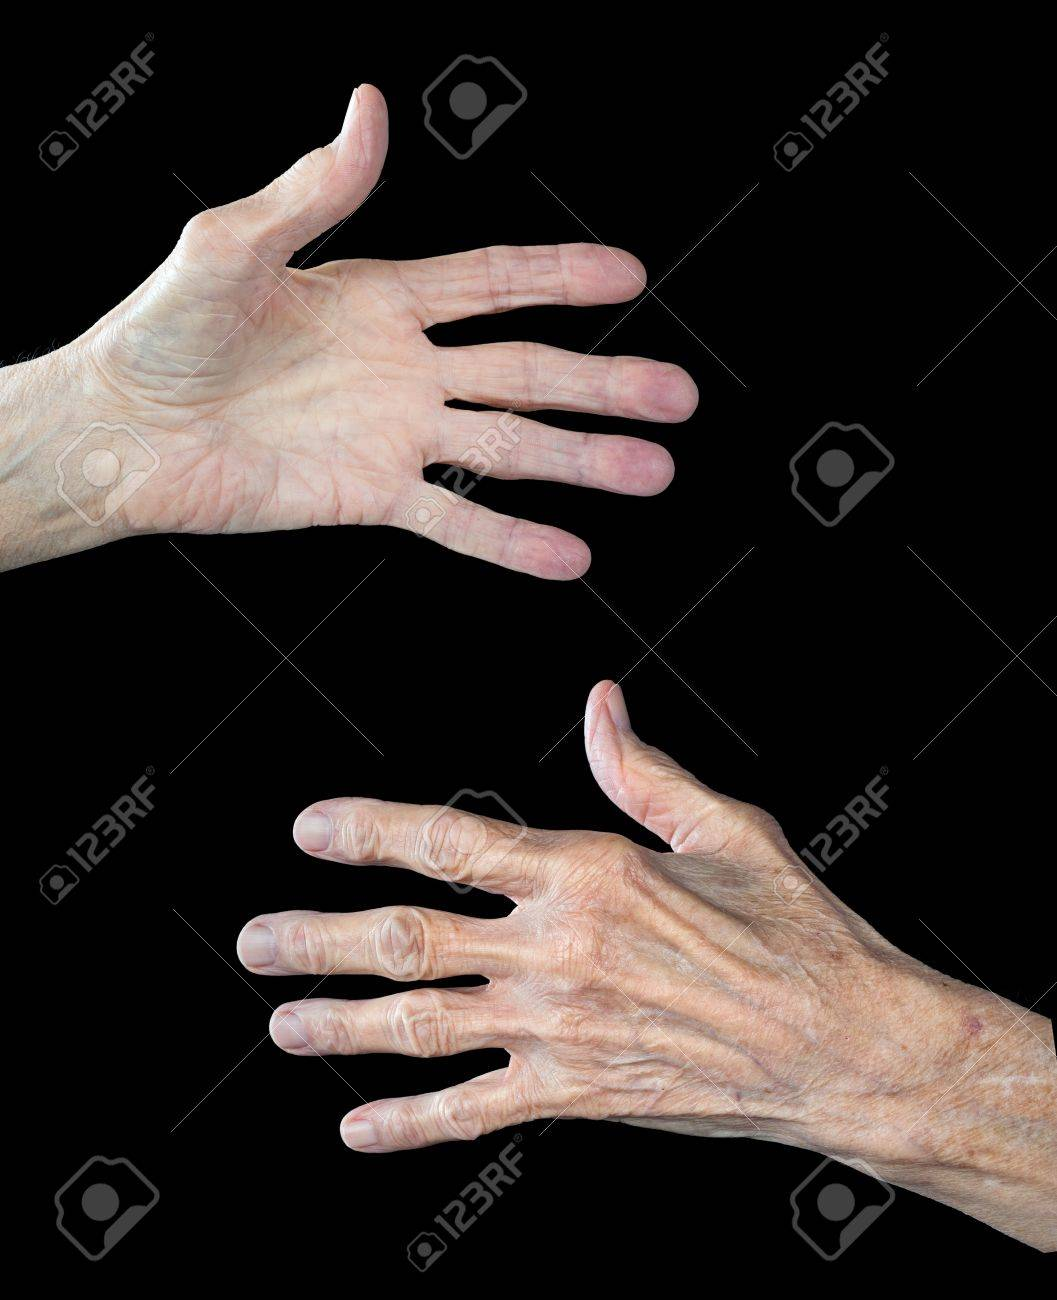 The front and back of an elderly woman's hands.  The subject has arthritus and shows clear signs of aging. Stock Photo - 15564495